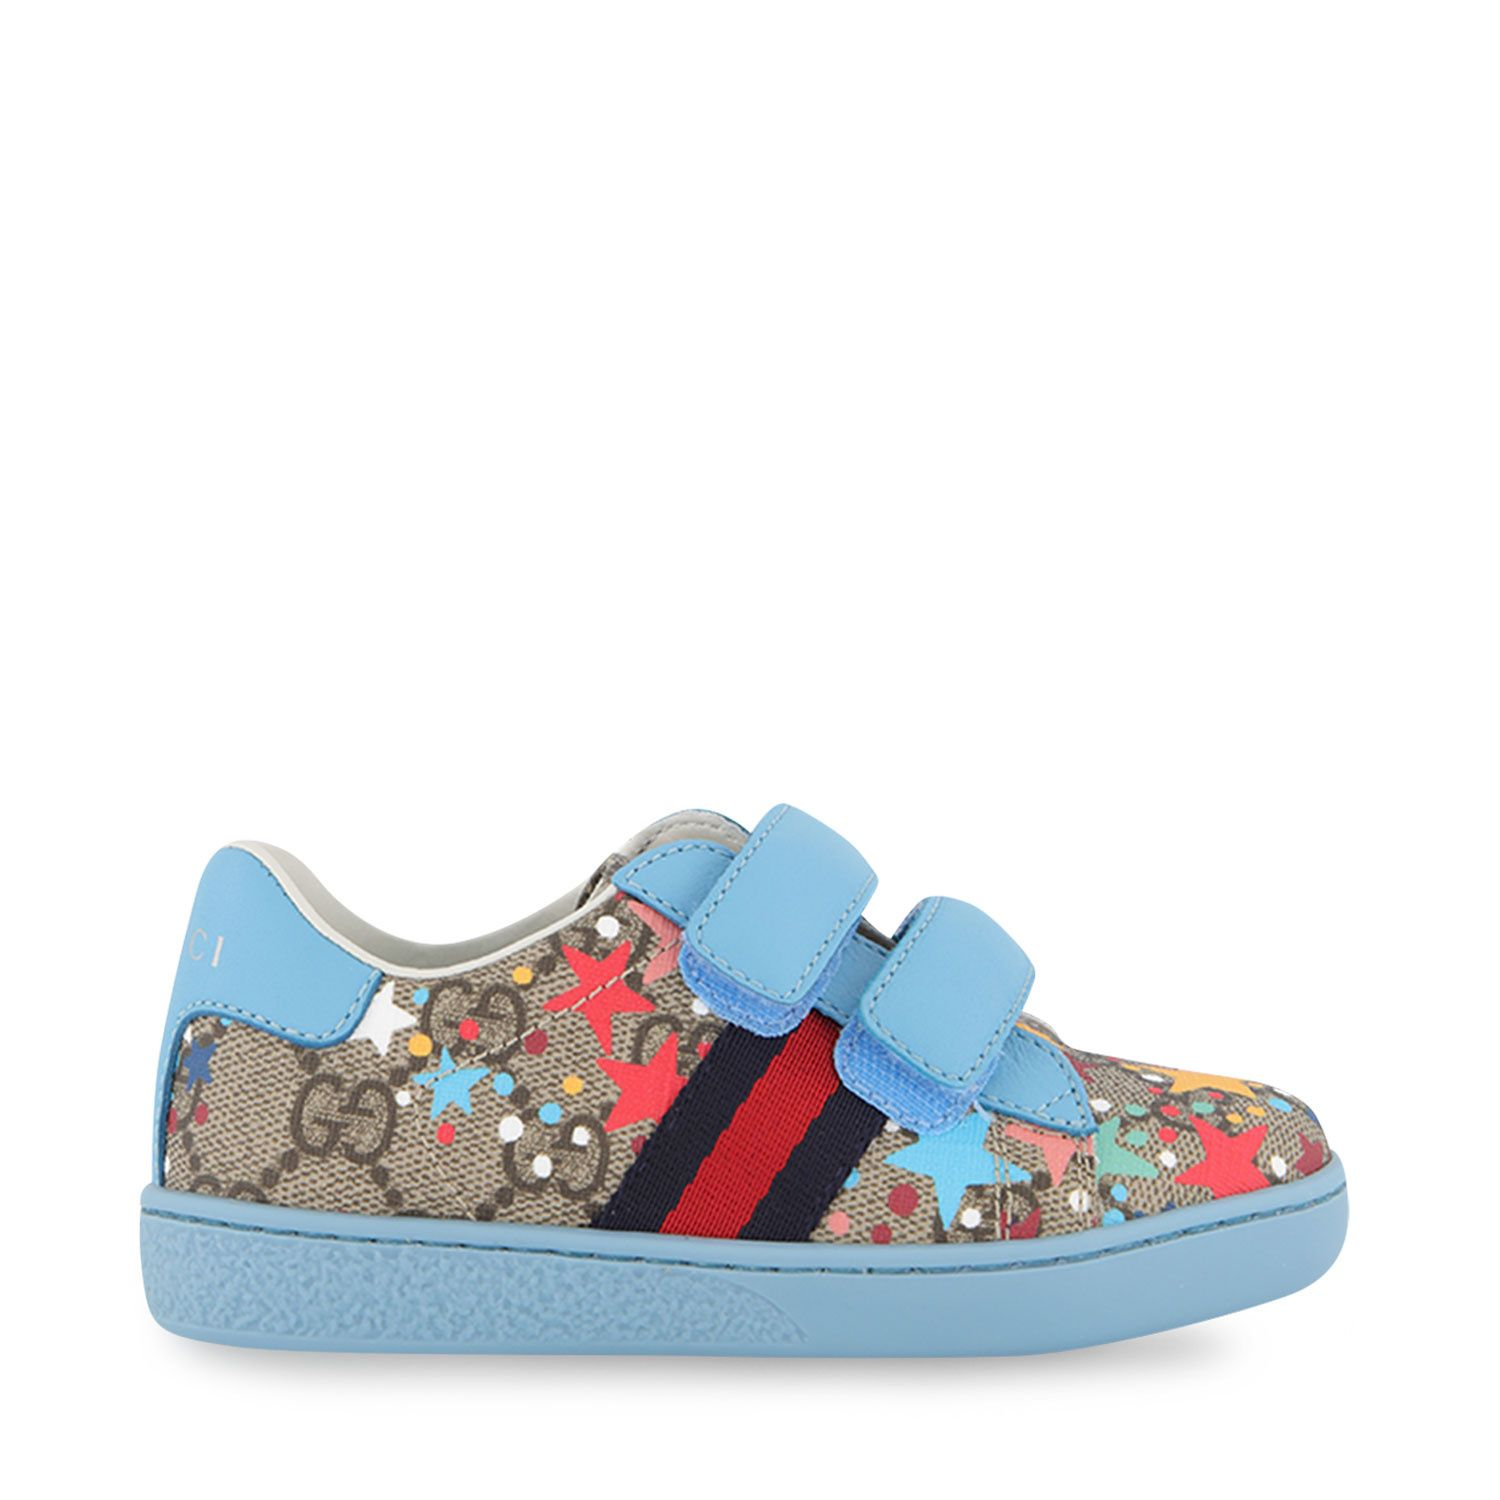 Picture of Gucci 463088 2R610 kids sneakers light blue